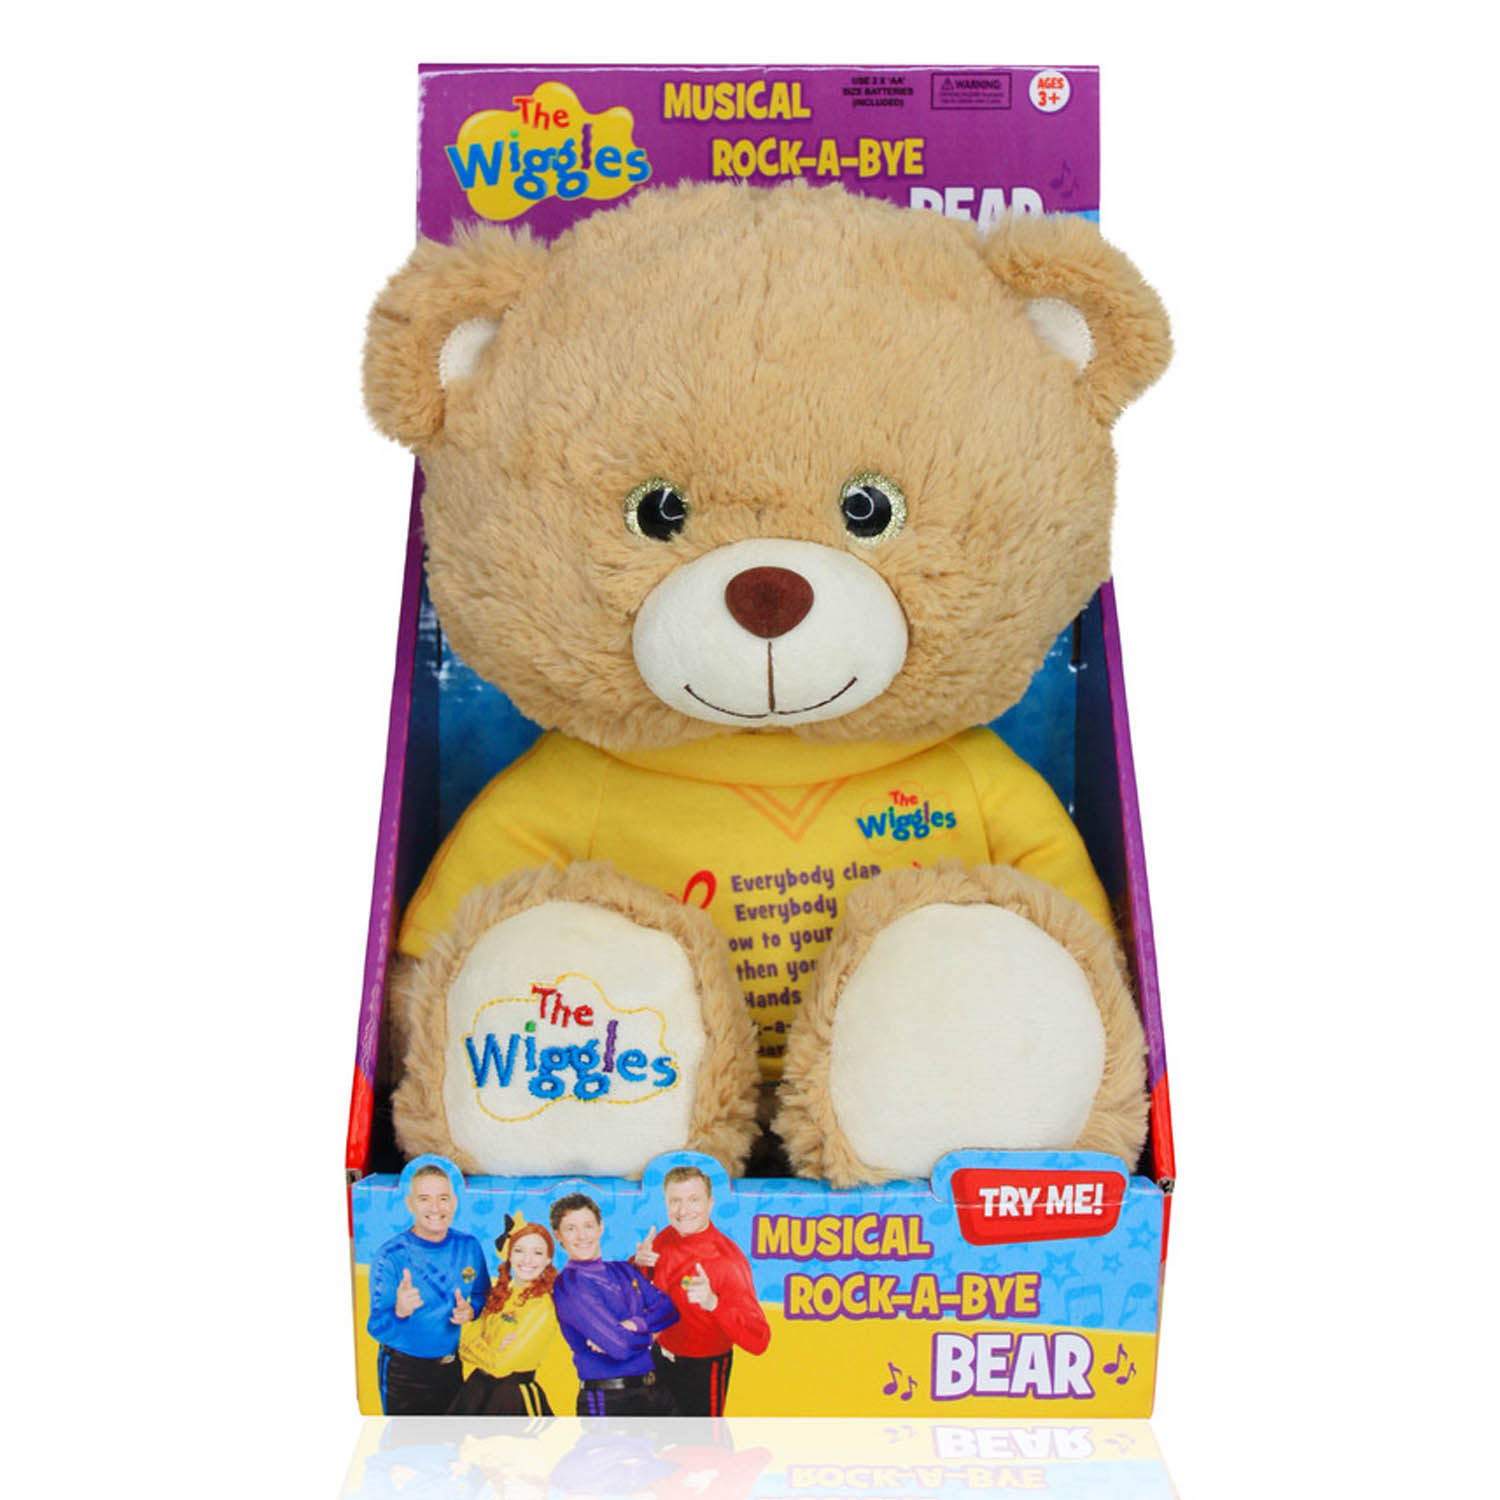 Wiggles Musical Rock-A-Bye Bear Singing Plush